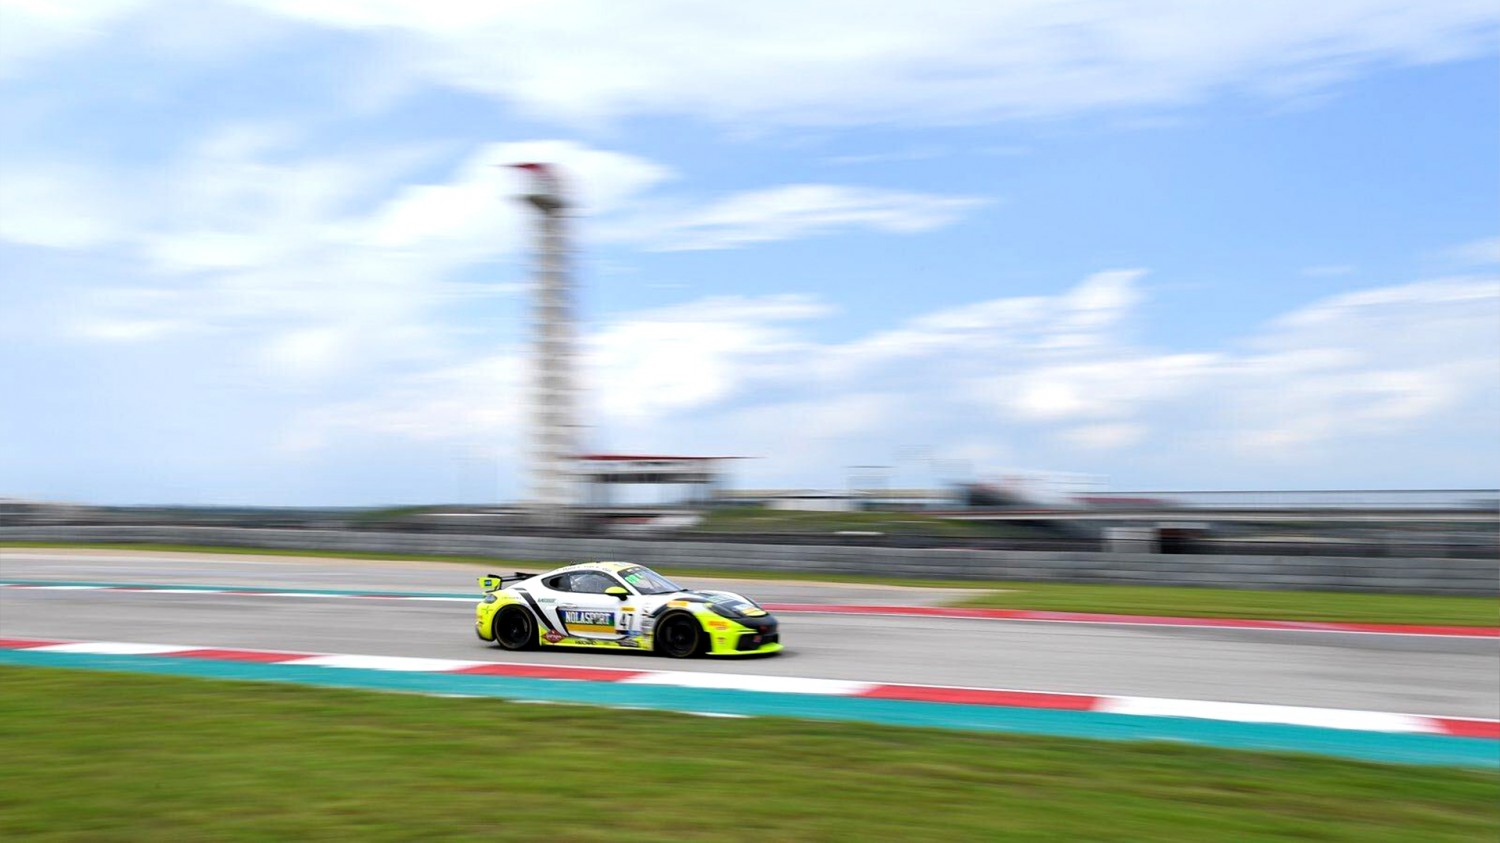 Hart Fastest in Combined Sprint/SprintX Practice 2 at COTA